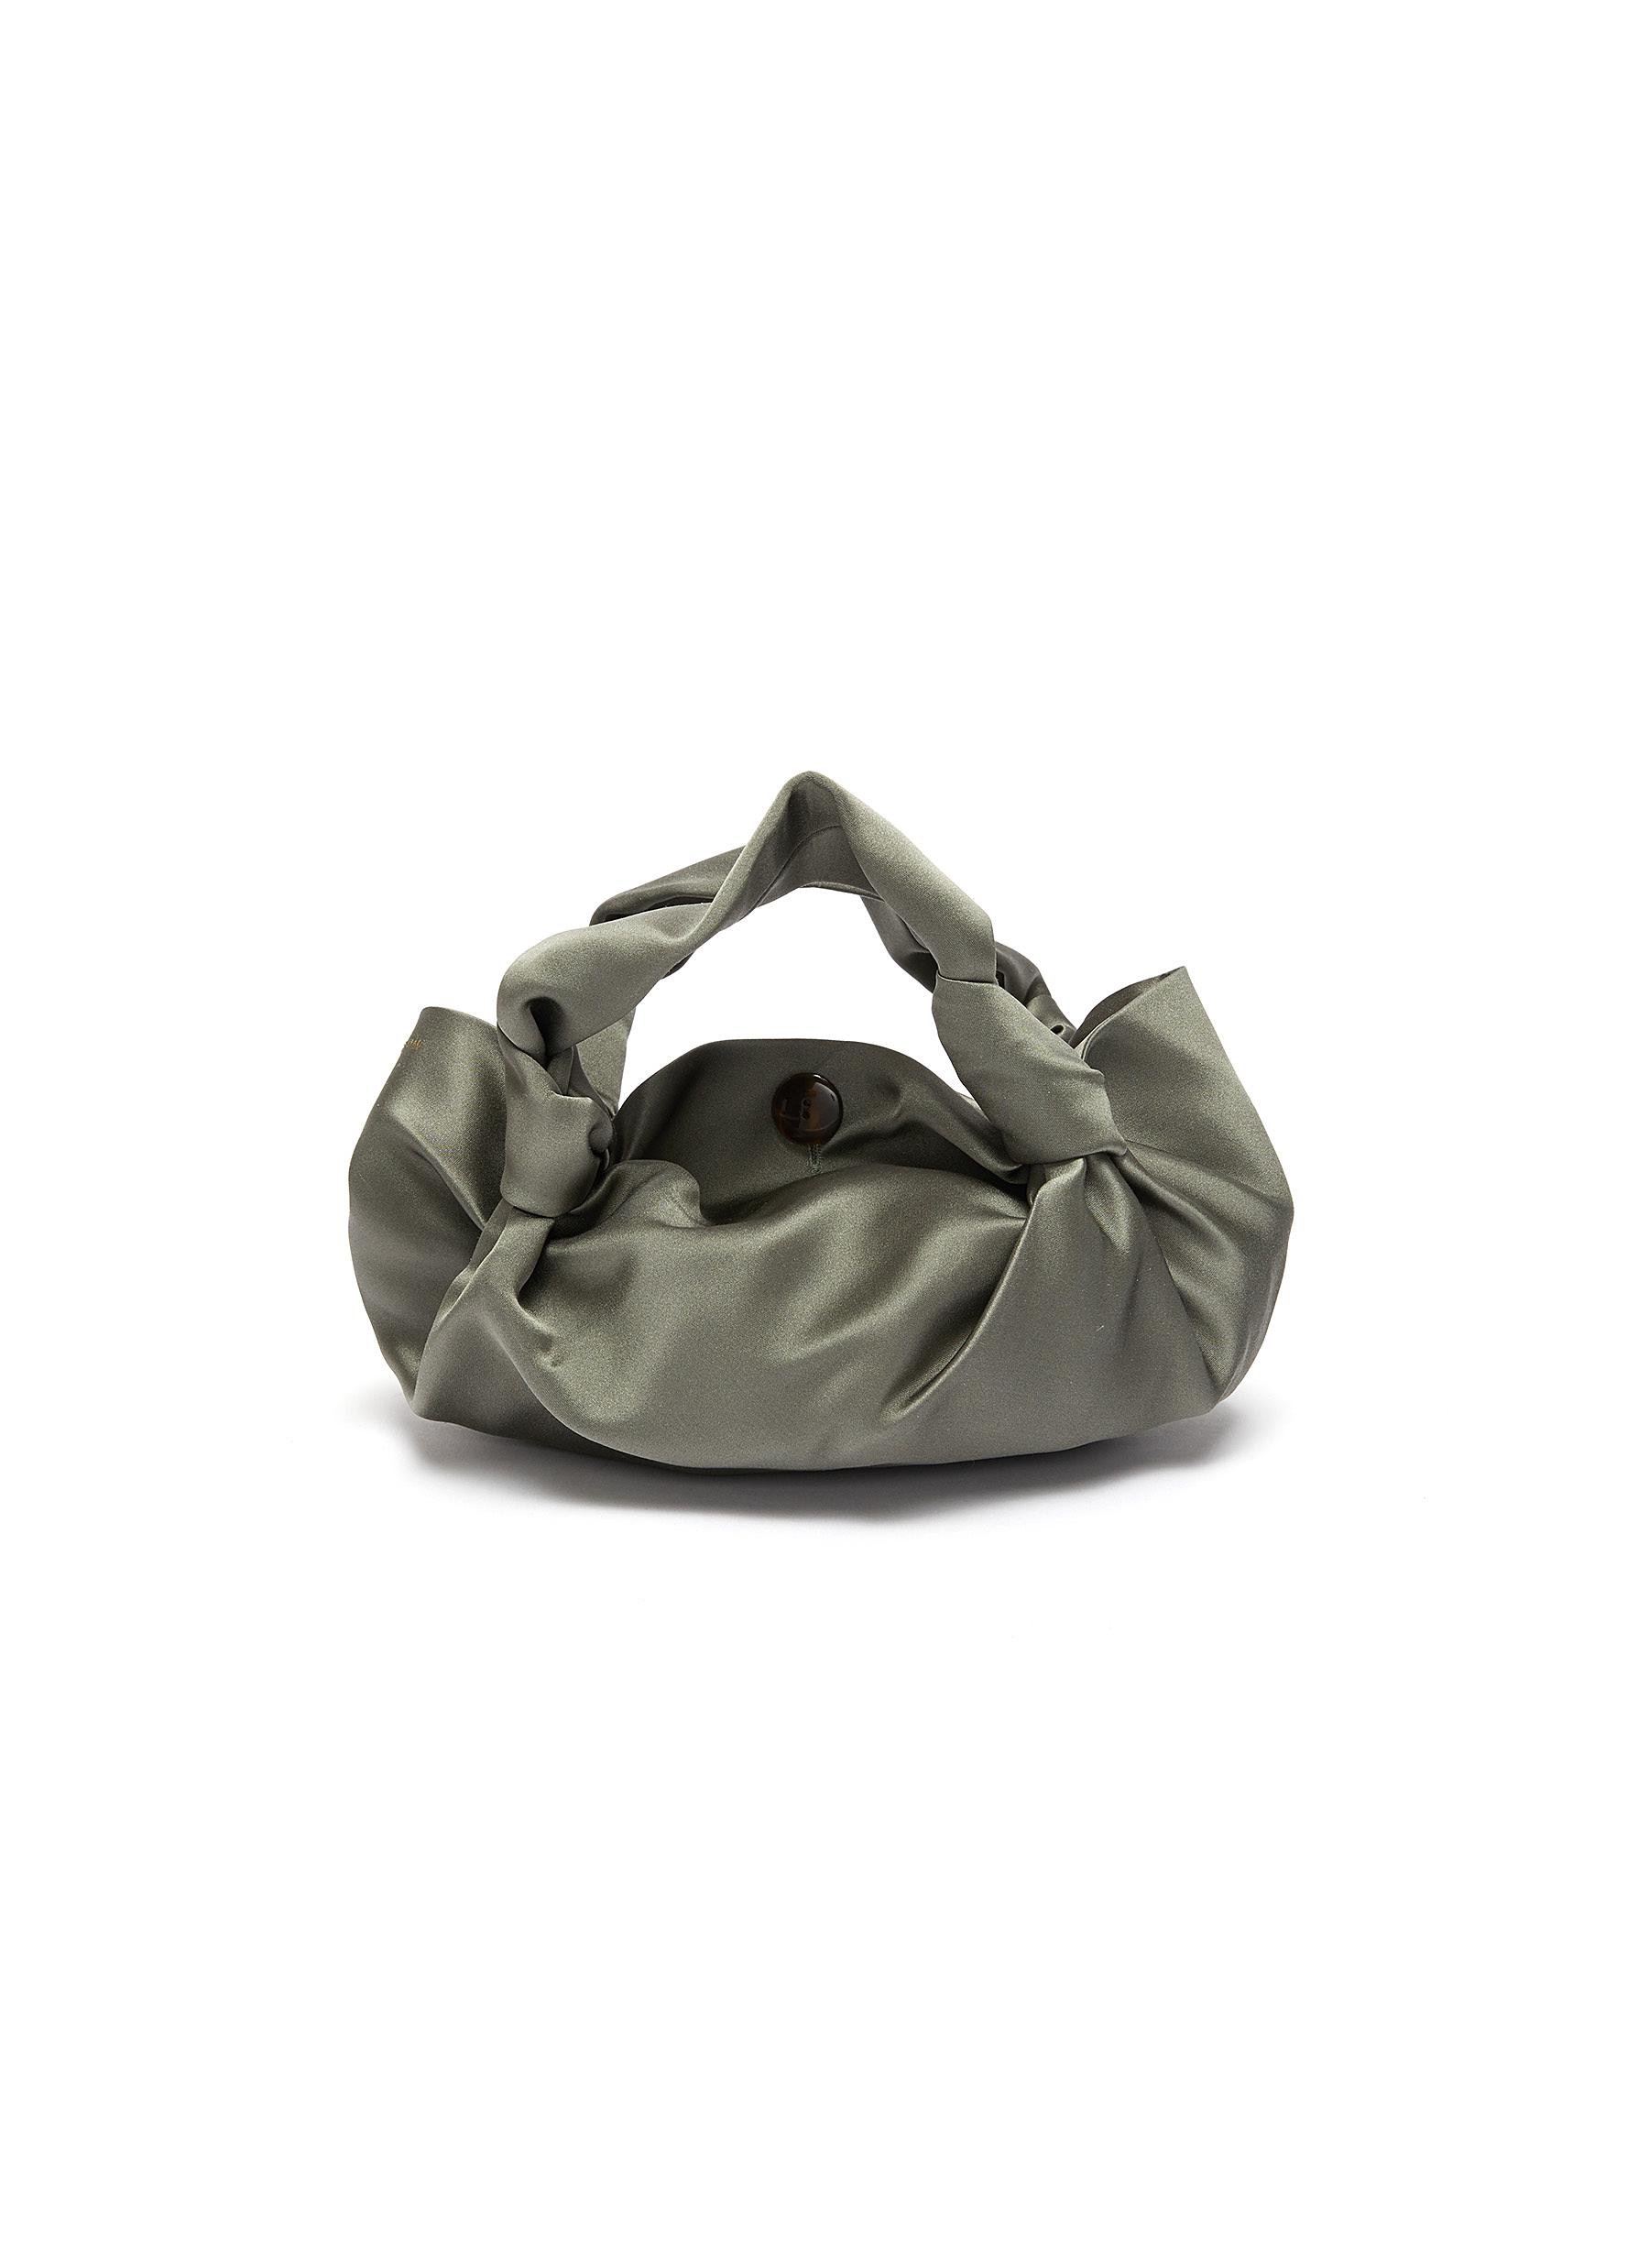 The Row 'Ascot Two' Silk-Satin Bag In Pale Sage